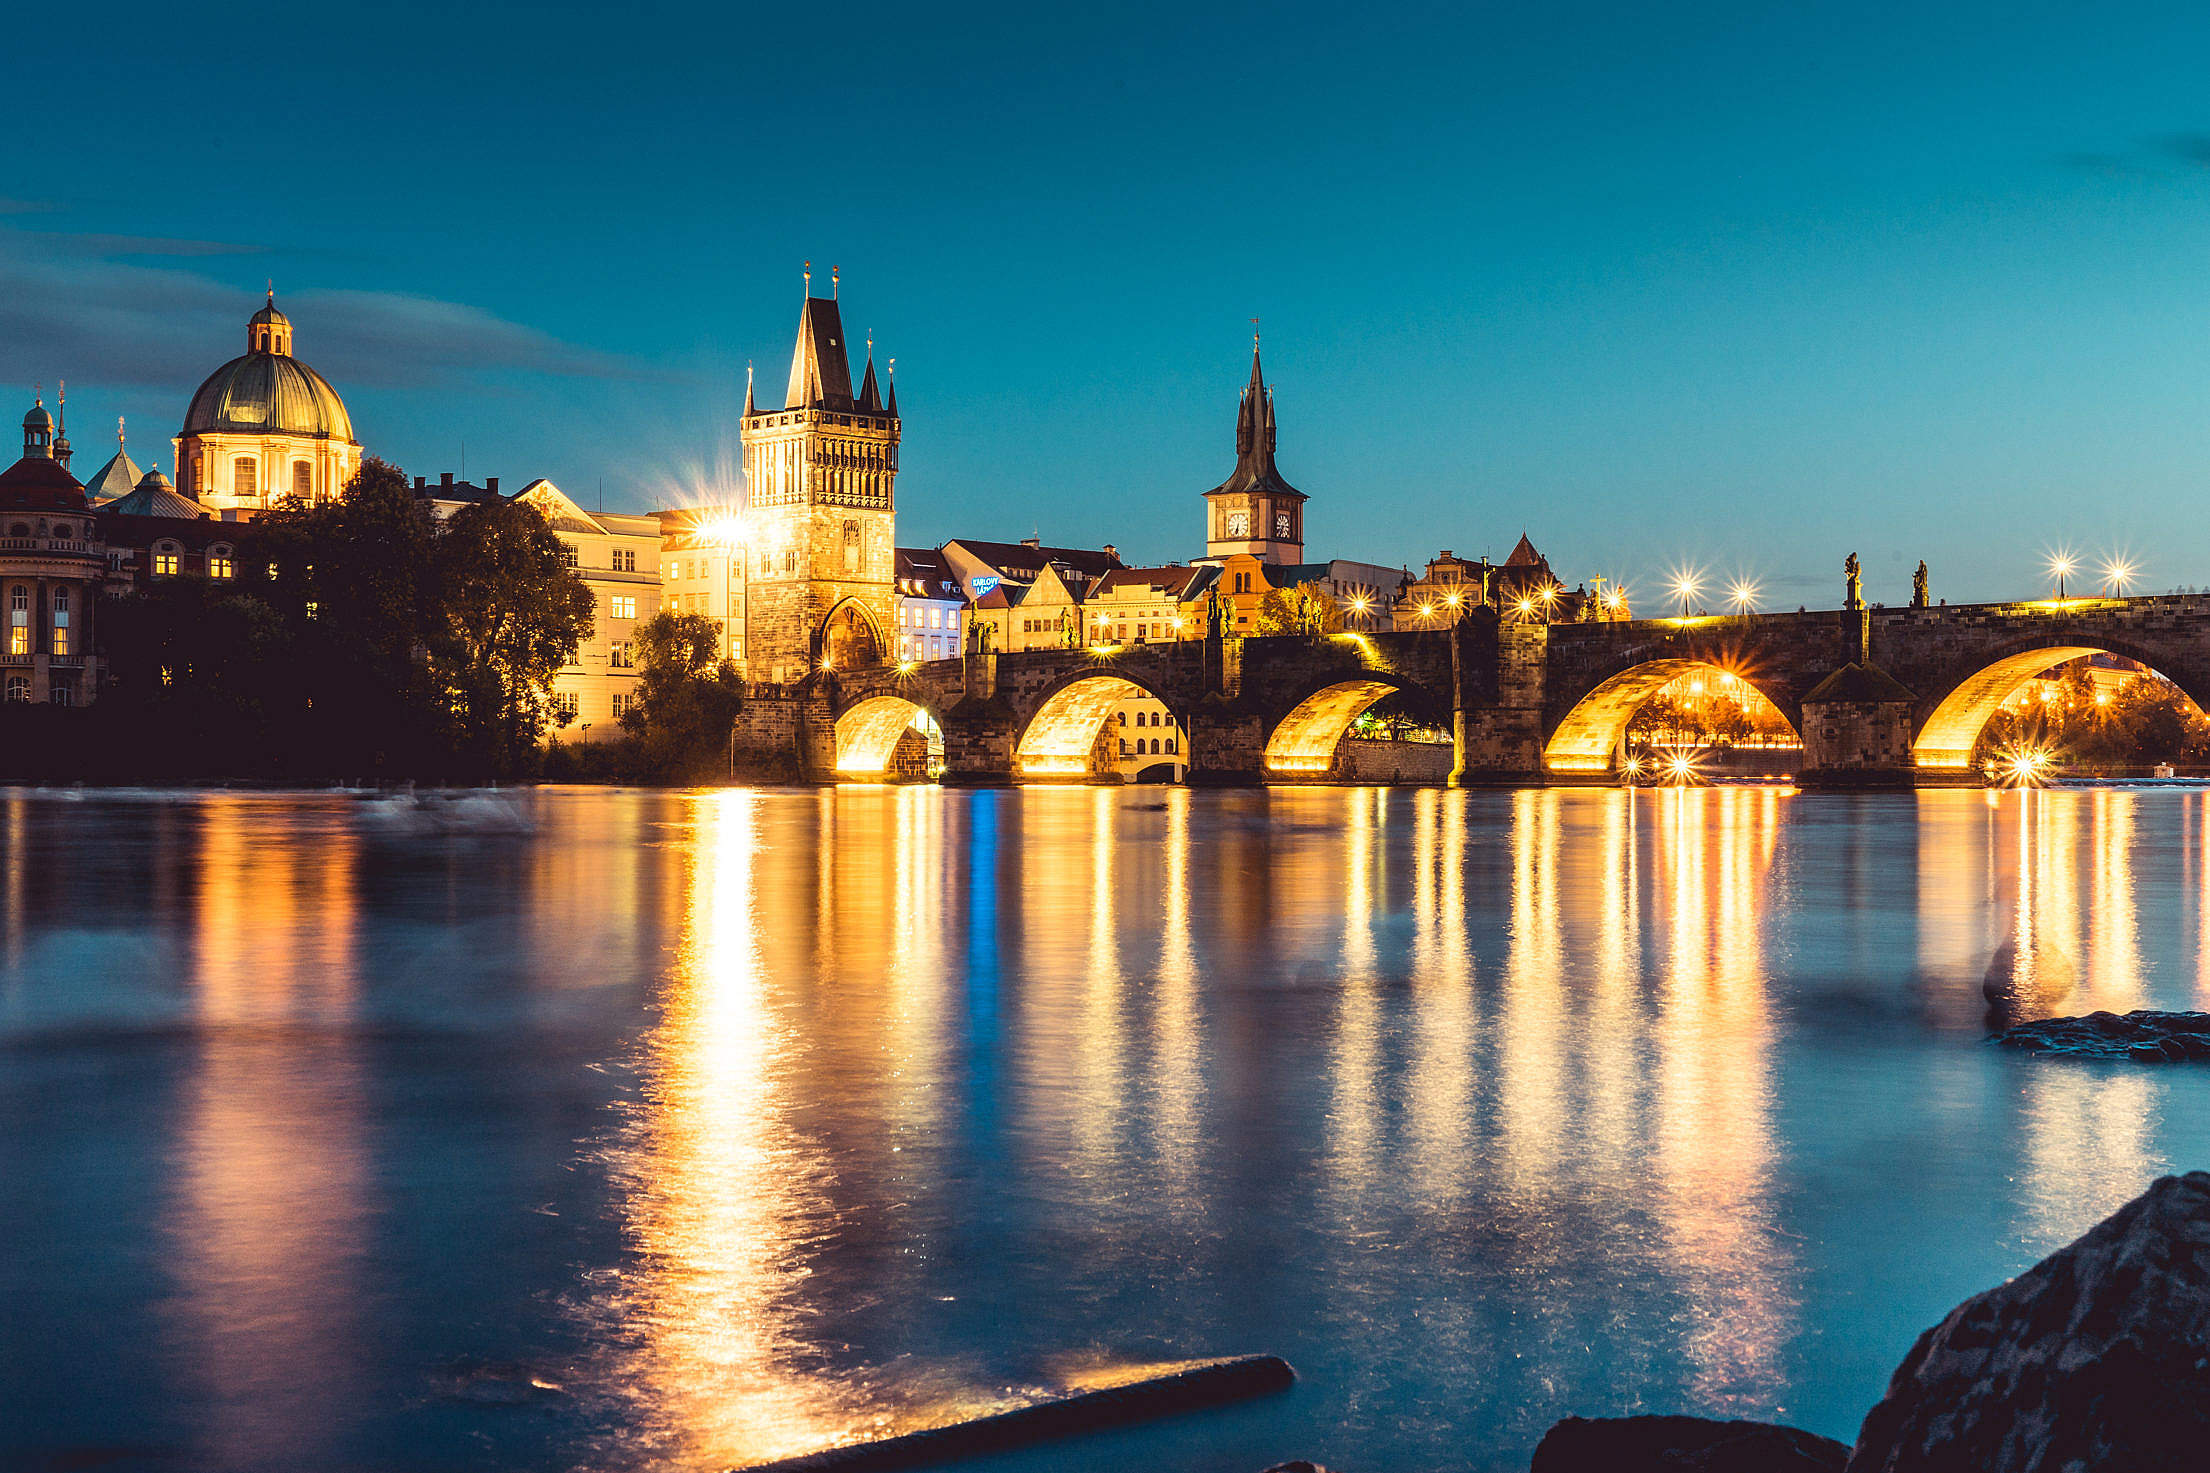 Charles Bridge in Prague, Czechia Free Stock Photo